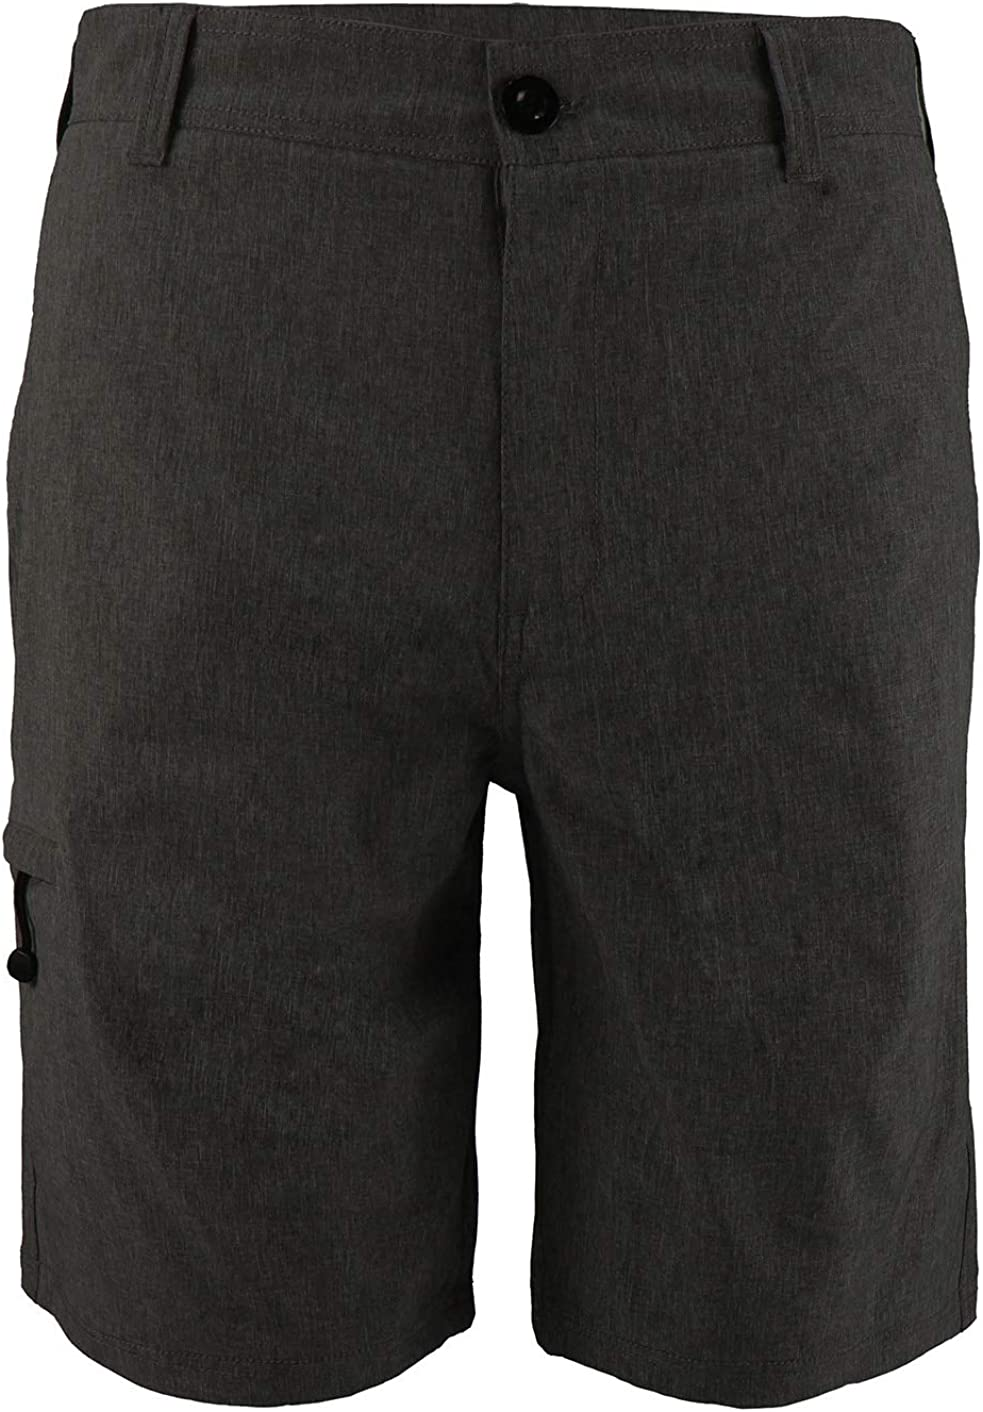 Mens Athletic Shorts Casual Performance Stretch 21 Inches Inseam Cargo